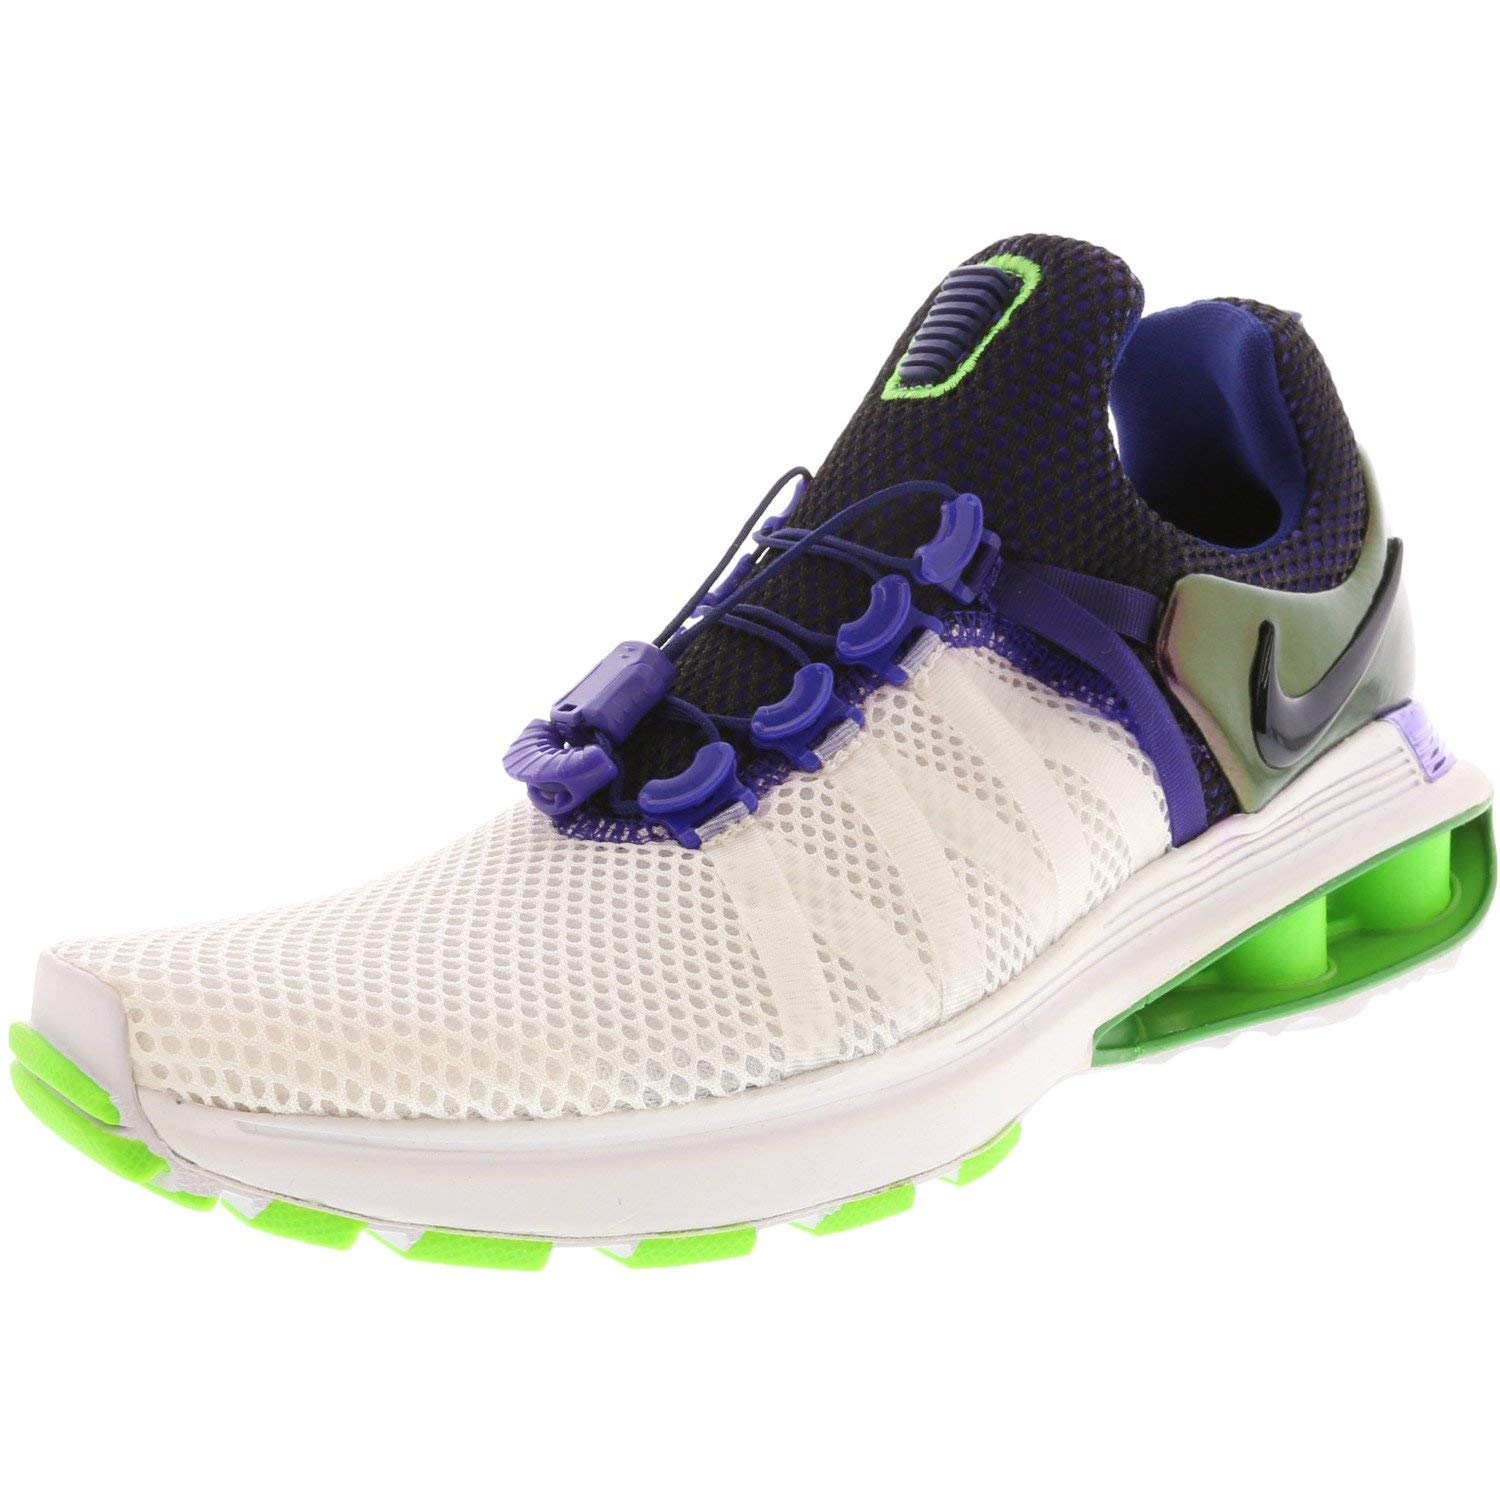 Médula ósea Pobreza extrema Tacto  Nike Womens Nike Shox Gravity Low Top Lace Up Fashion Sneakers - Buy Online  in Cayman Islands. | nike Products in Cayman Islands - See Prices, Reviews  and Free Delivery over CI$60 | Desertcart